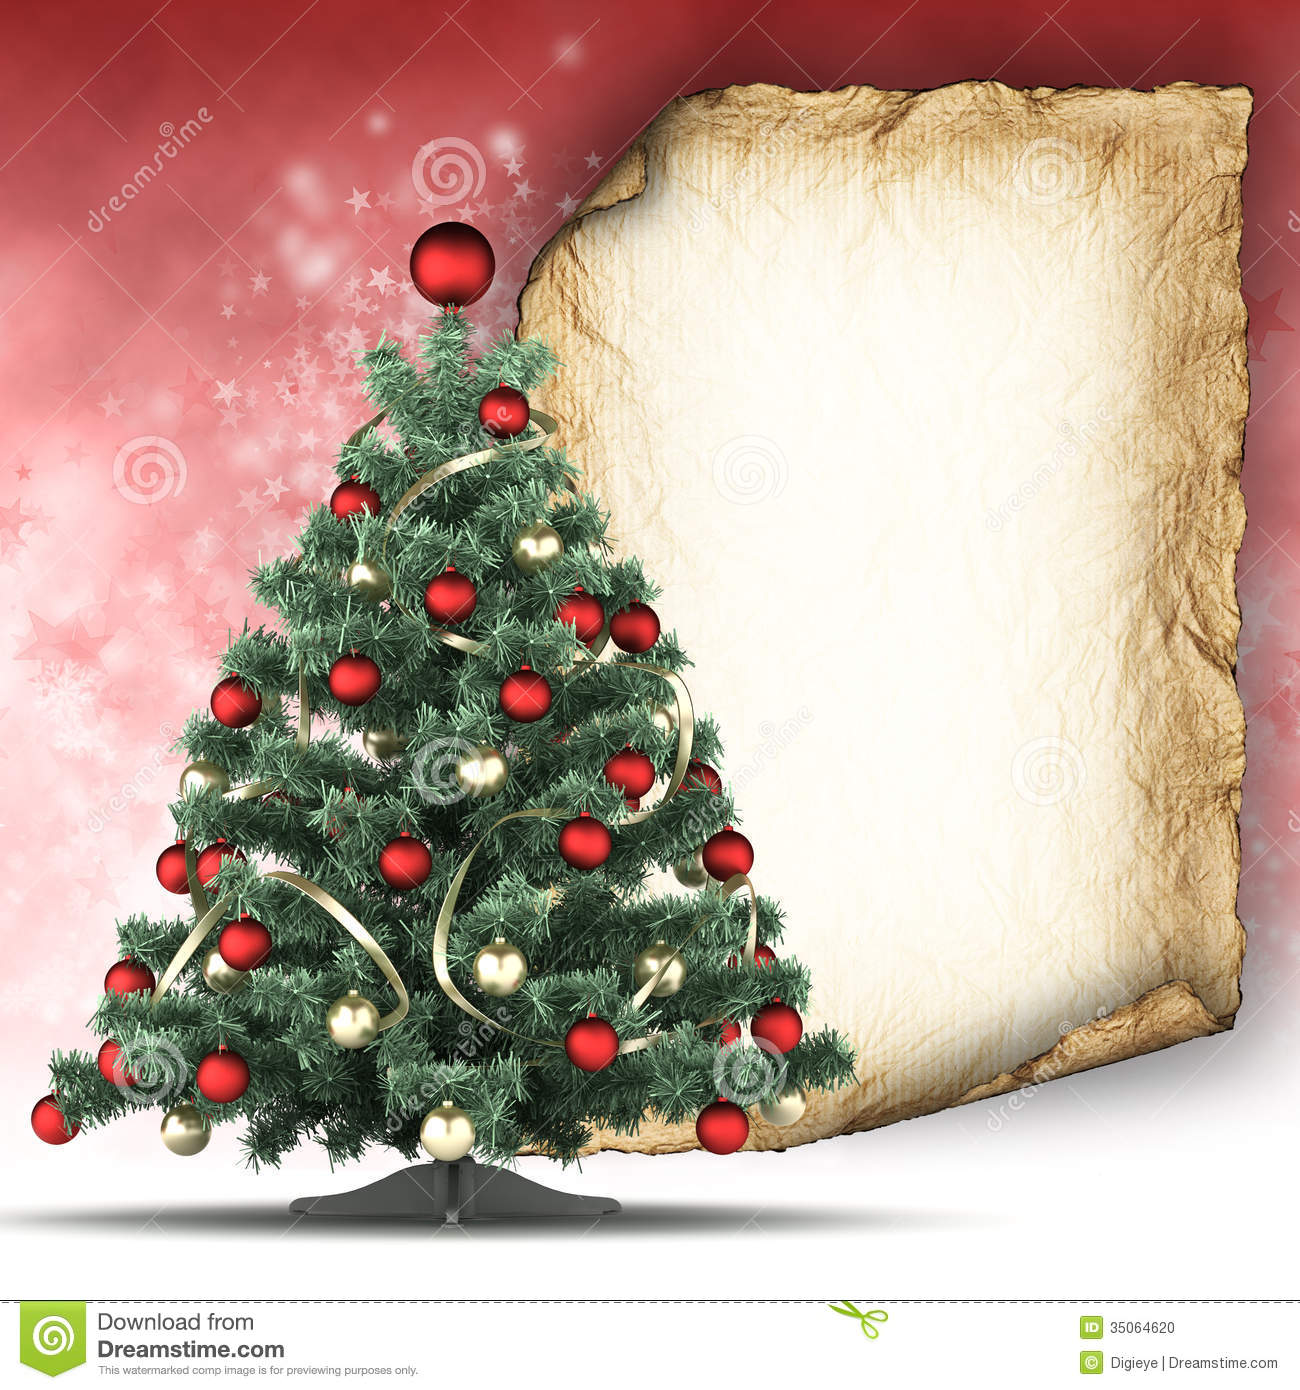 Christmas Card Template Stock Photo - Image: 35064620